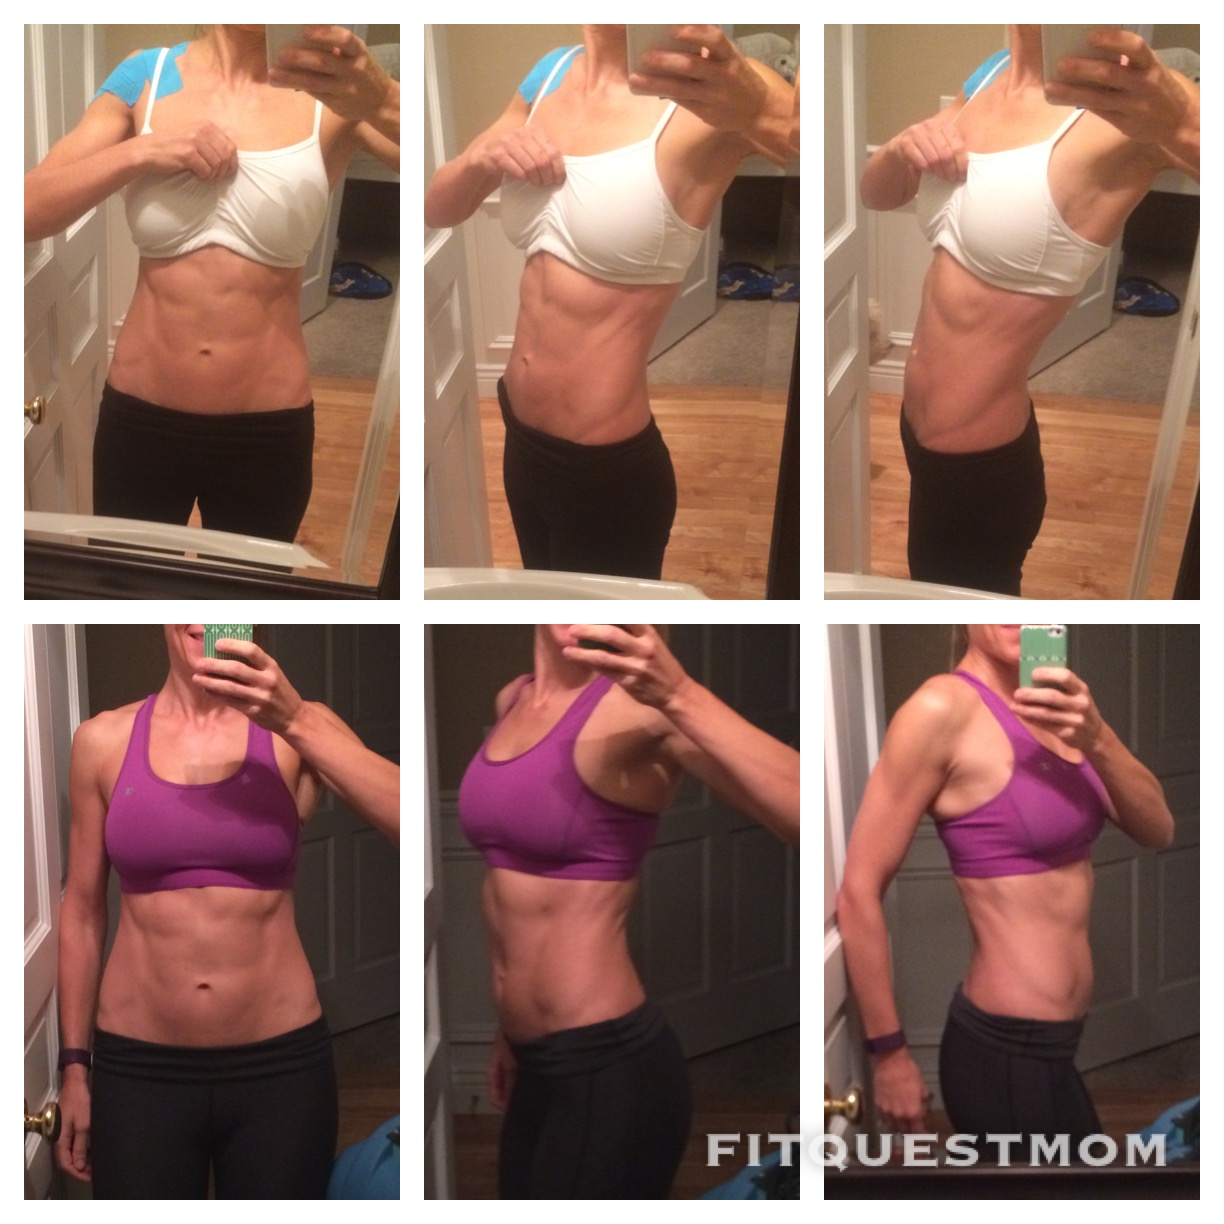 FitQuestMom before and after 10.23.14 vs. 10.20.15